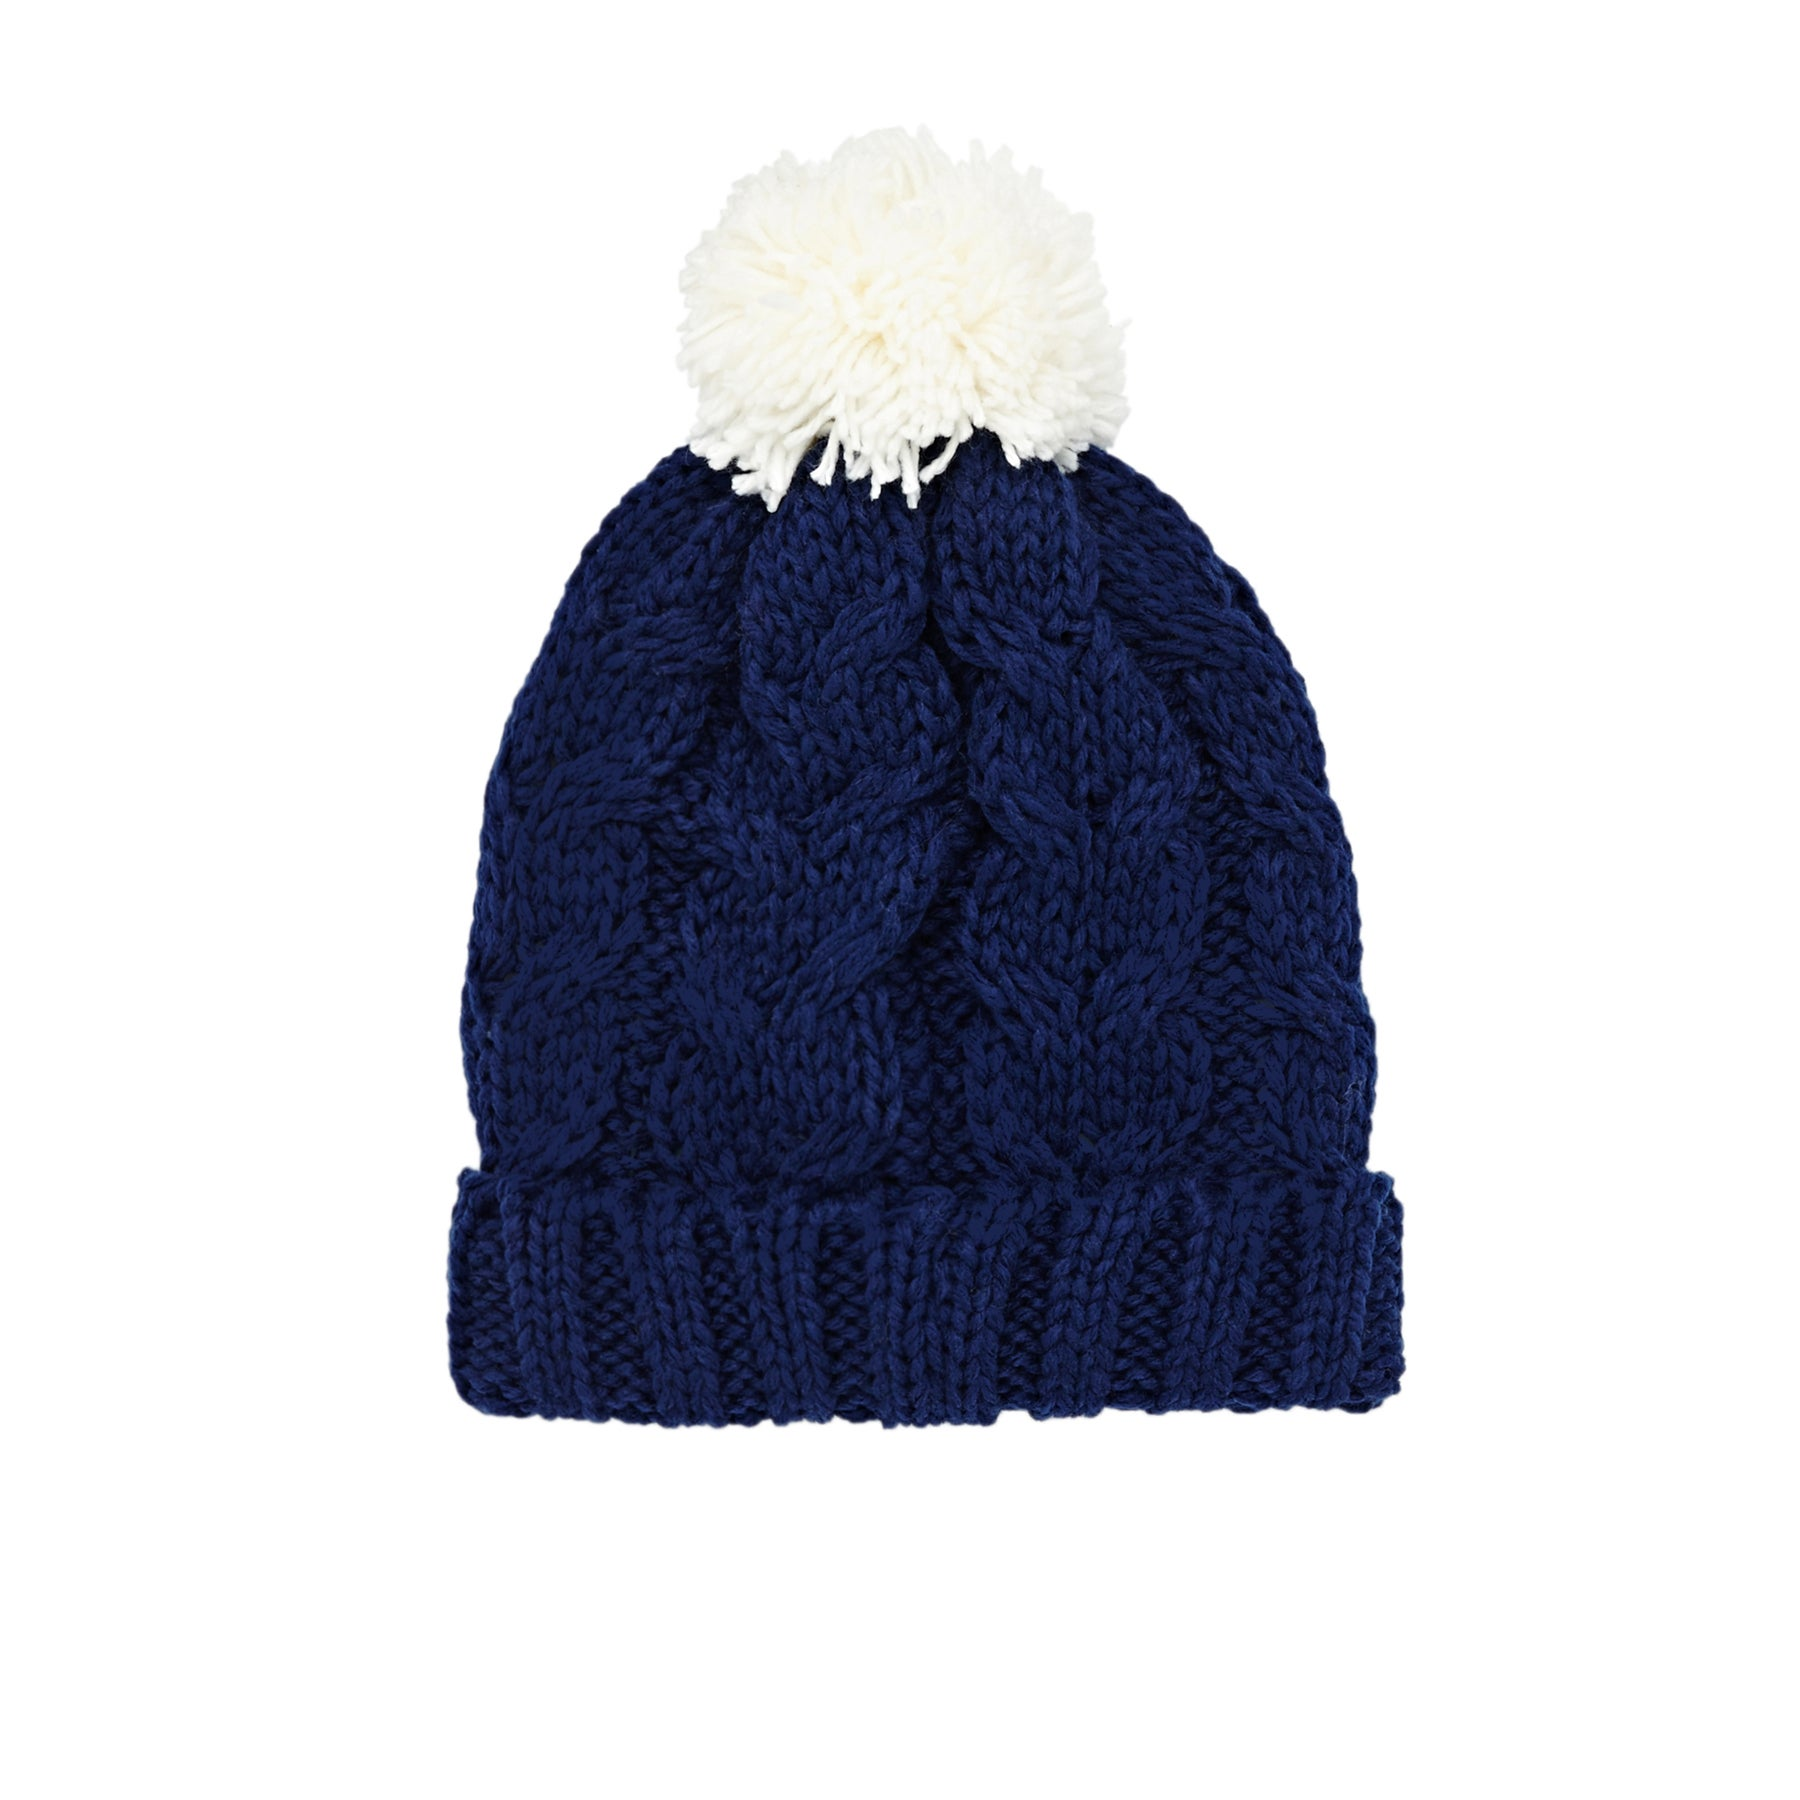 SWELL Whistler Cable Pom Womens Beanie - Navy